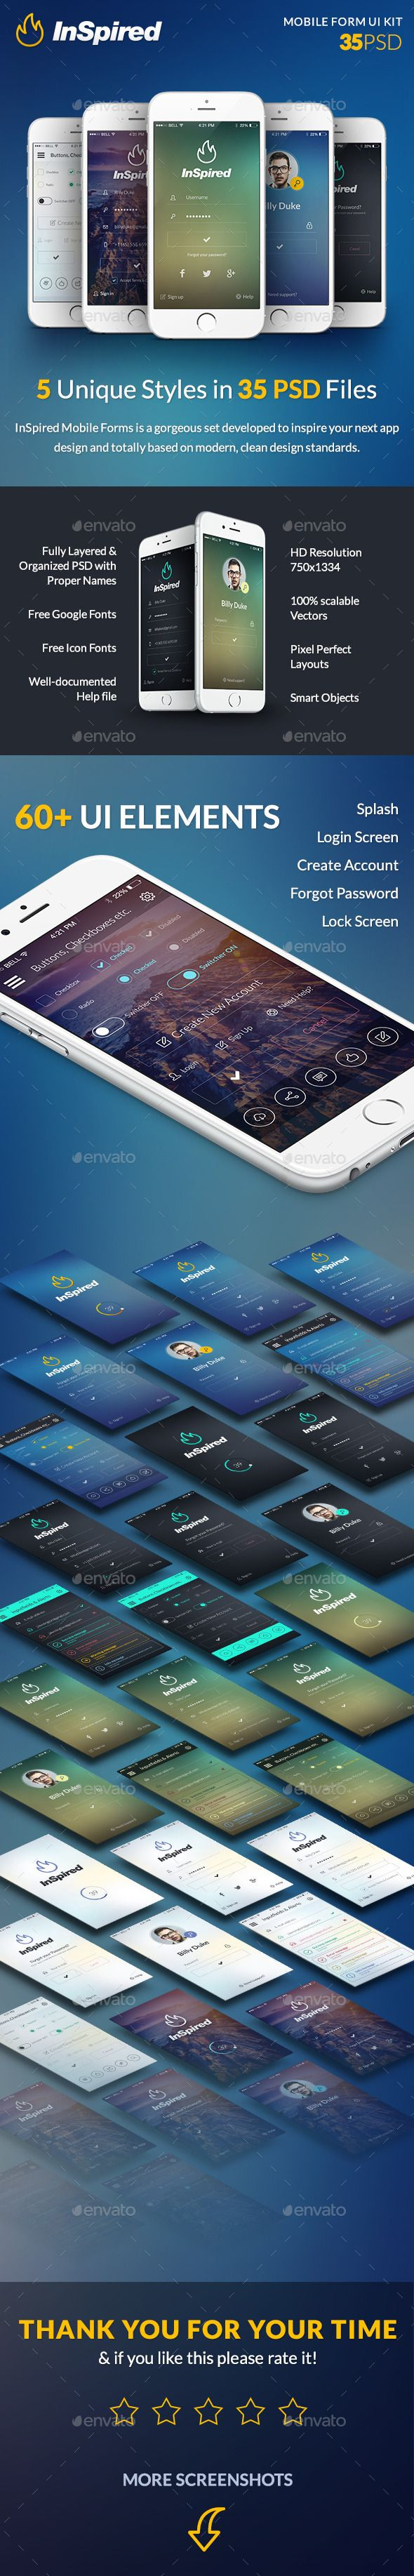 InSpired - Mobile Forms UI Template #psd #userinterface Download: http://graphicriver.net/item/inspired-mobile-forms/12922828?ref=ksioks